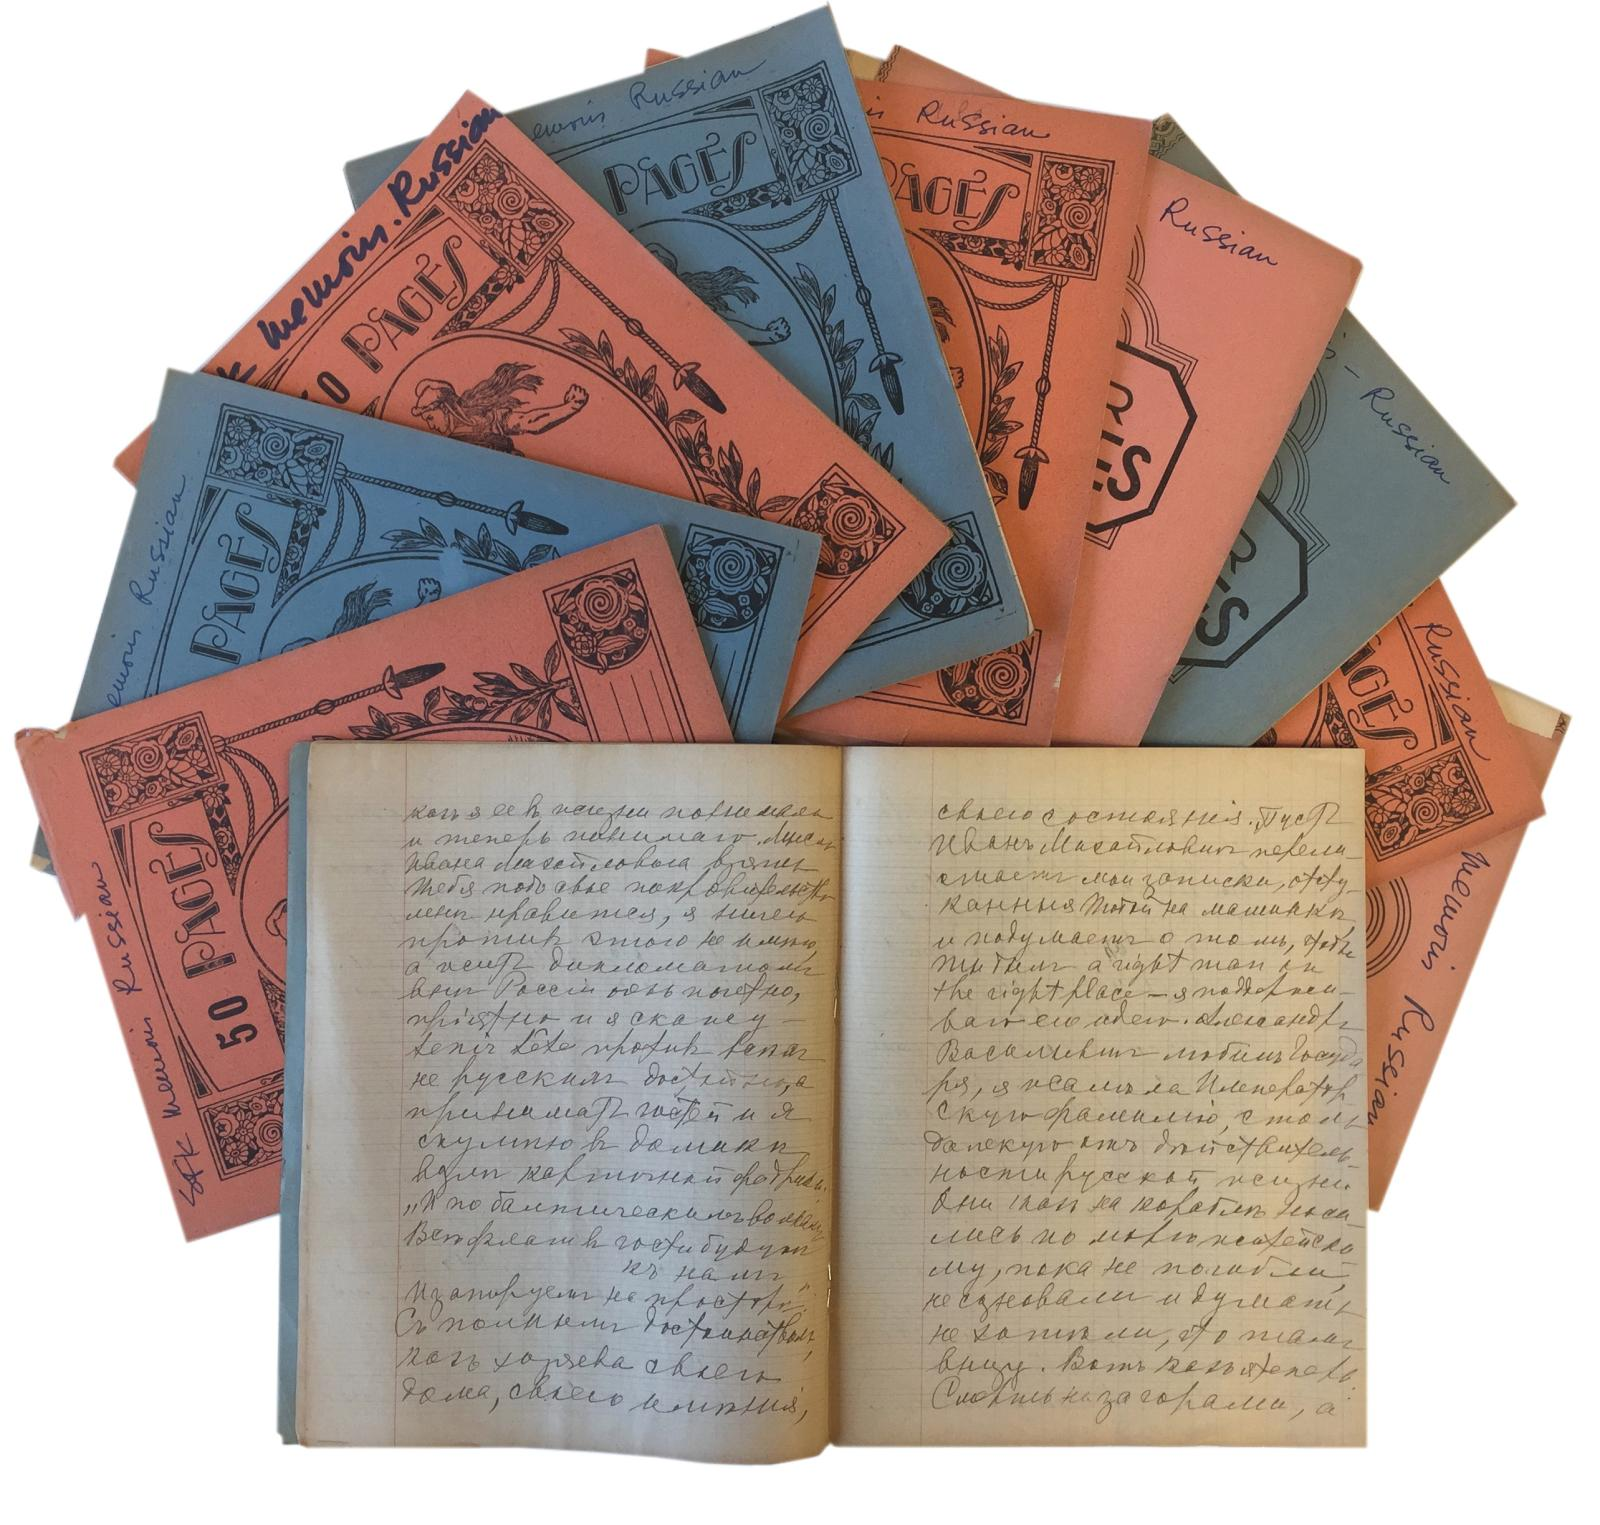 Sophia Feodorovna Kolchak (1876-1956), diaries written in ink (ten notebooks), begun in 1941.Estimate: €3,000/5,000